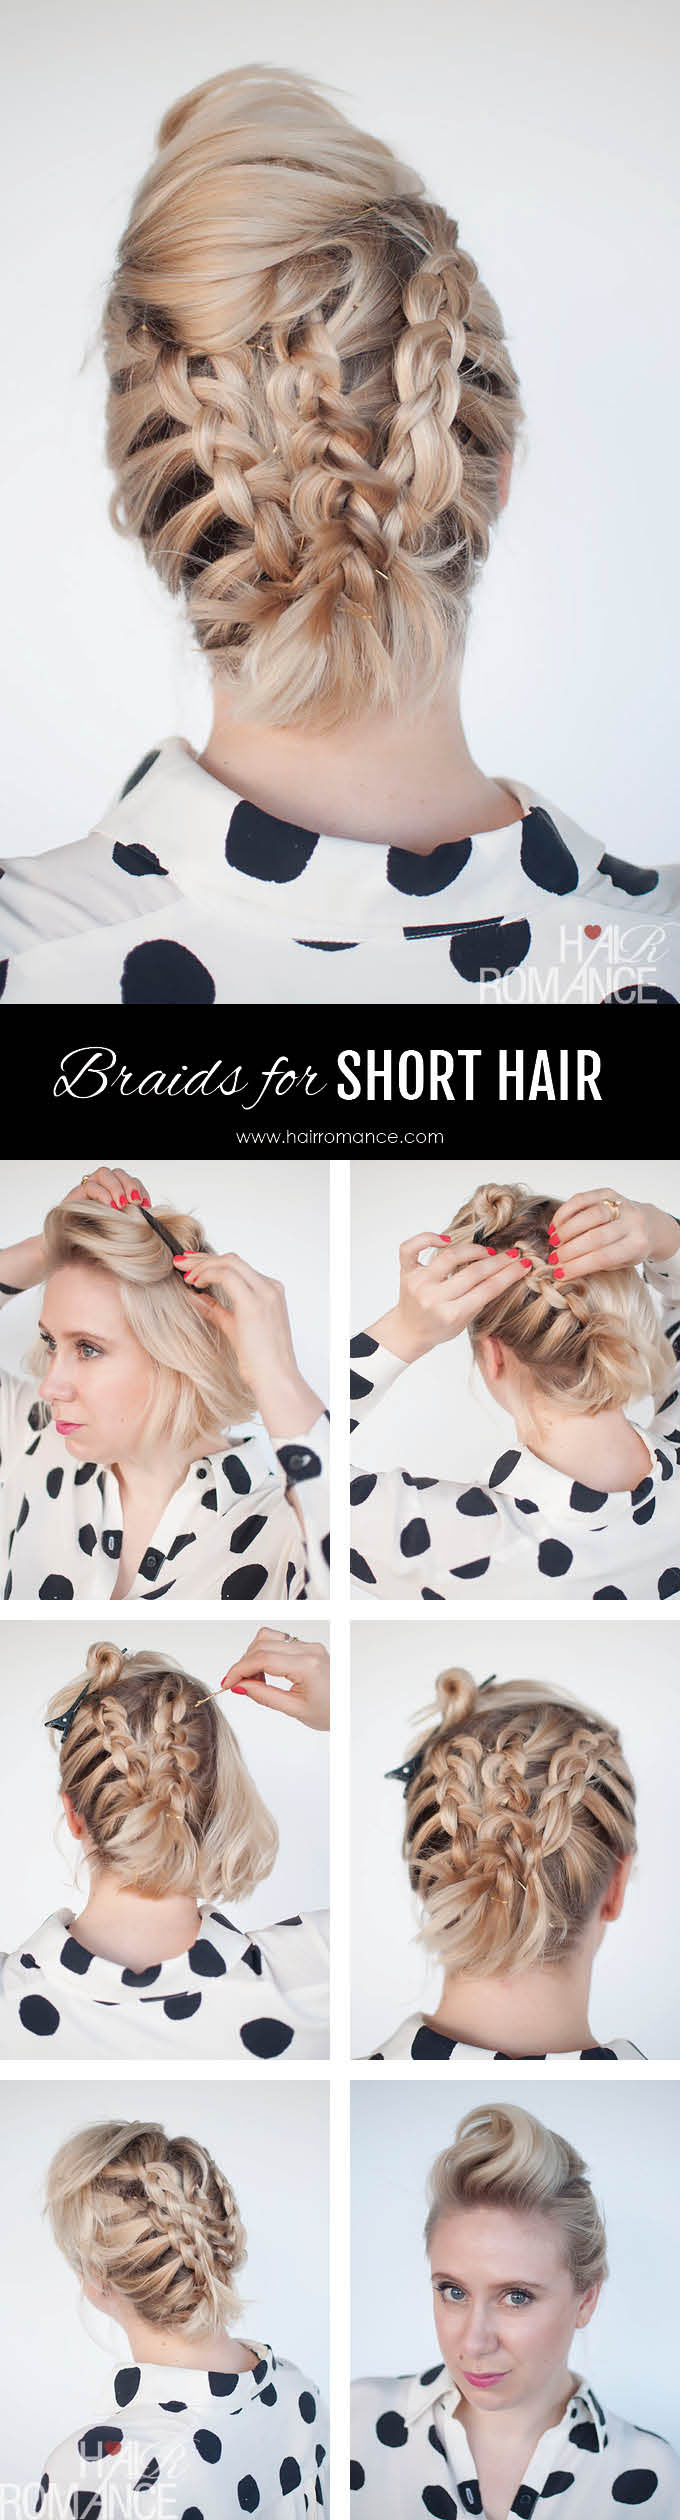 Braids for short hair - short hairstyle tutorial